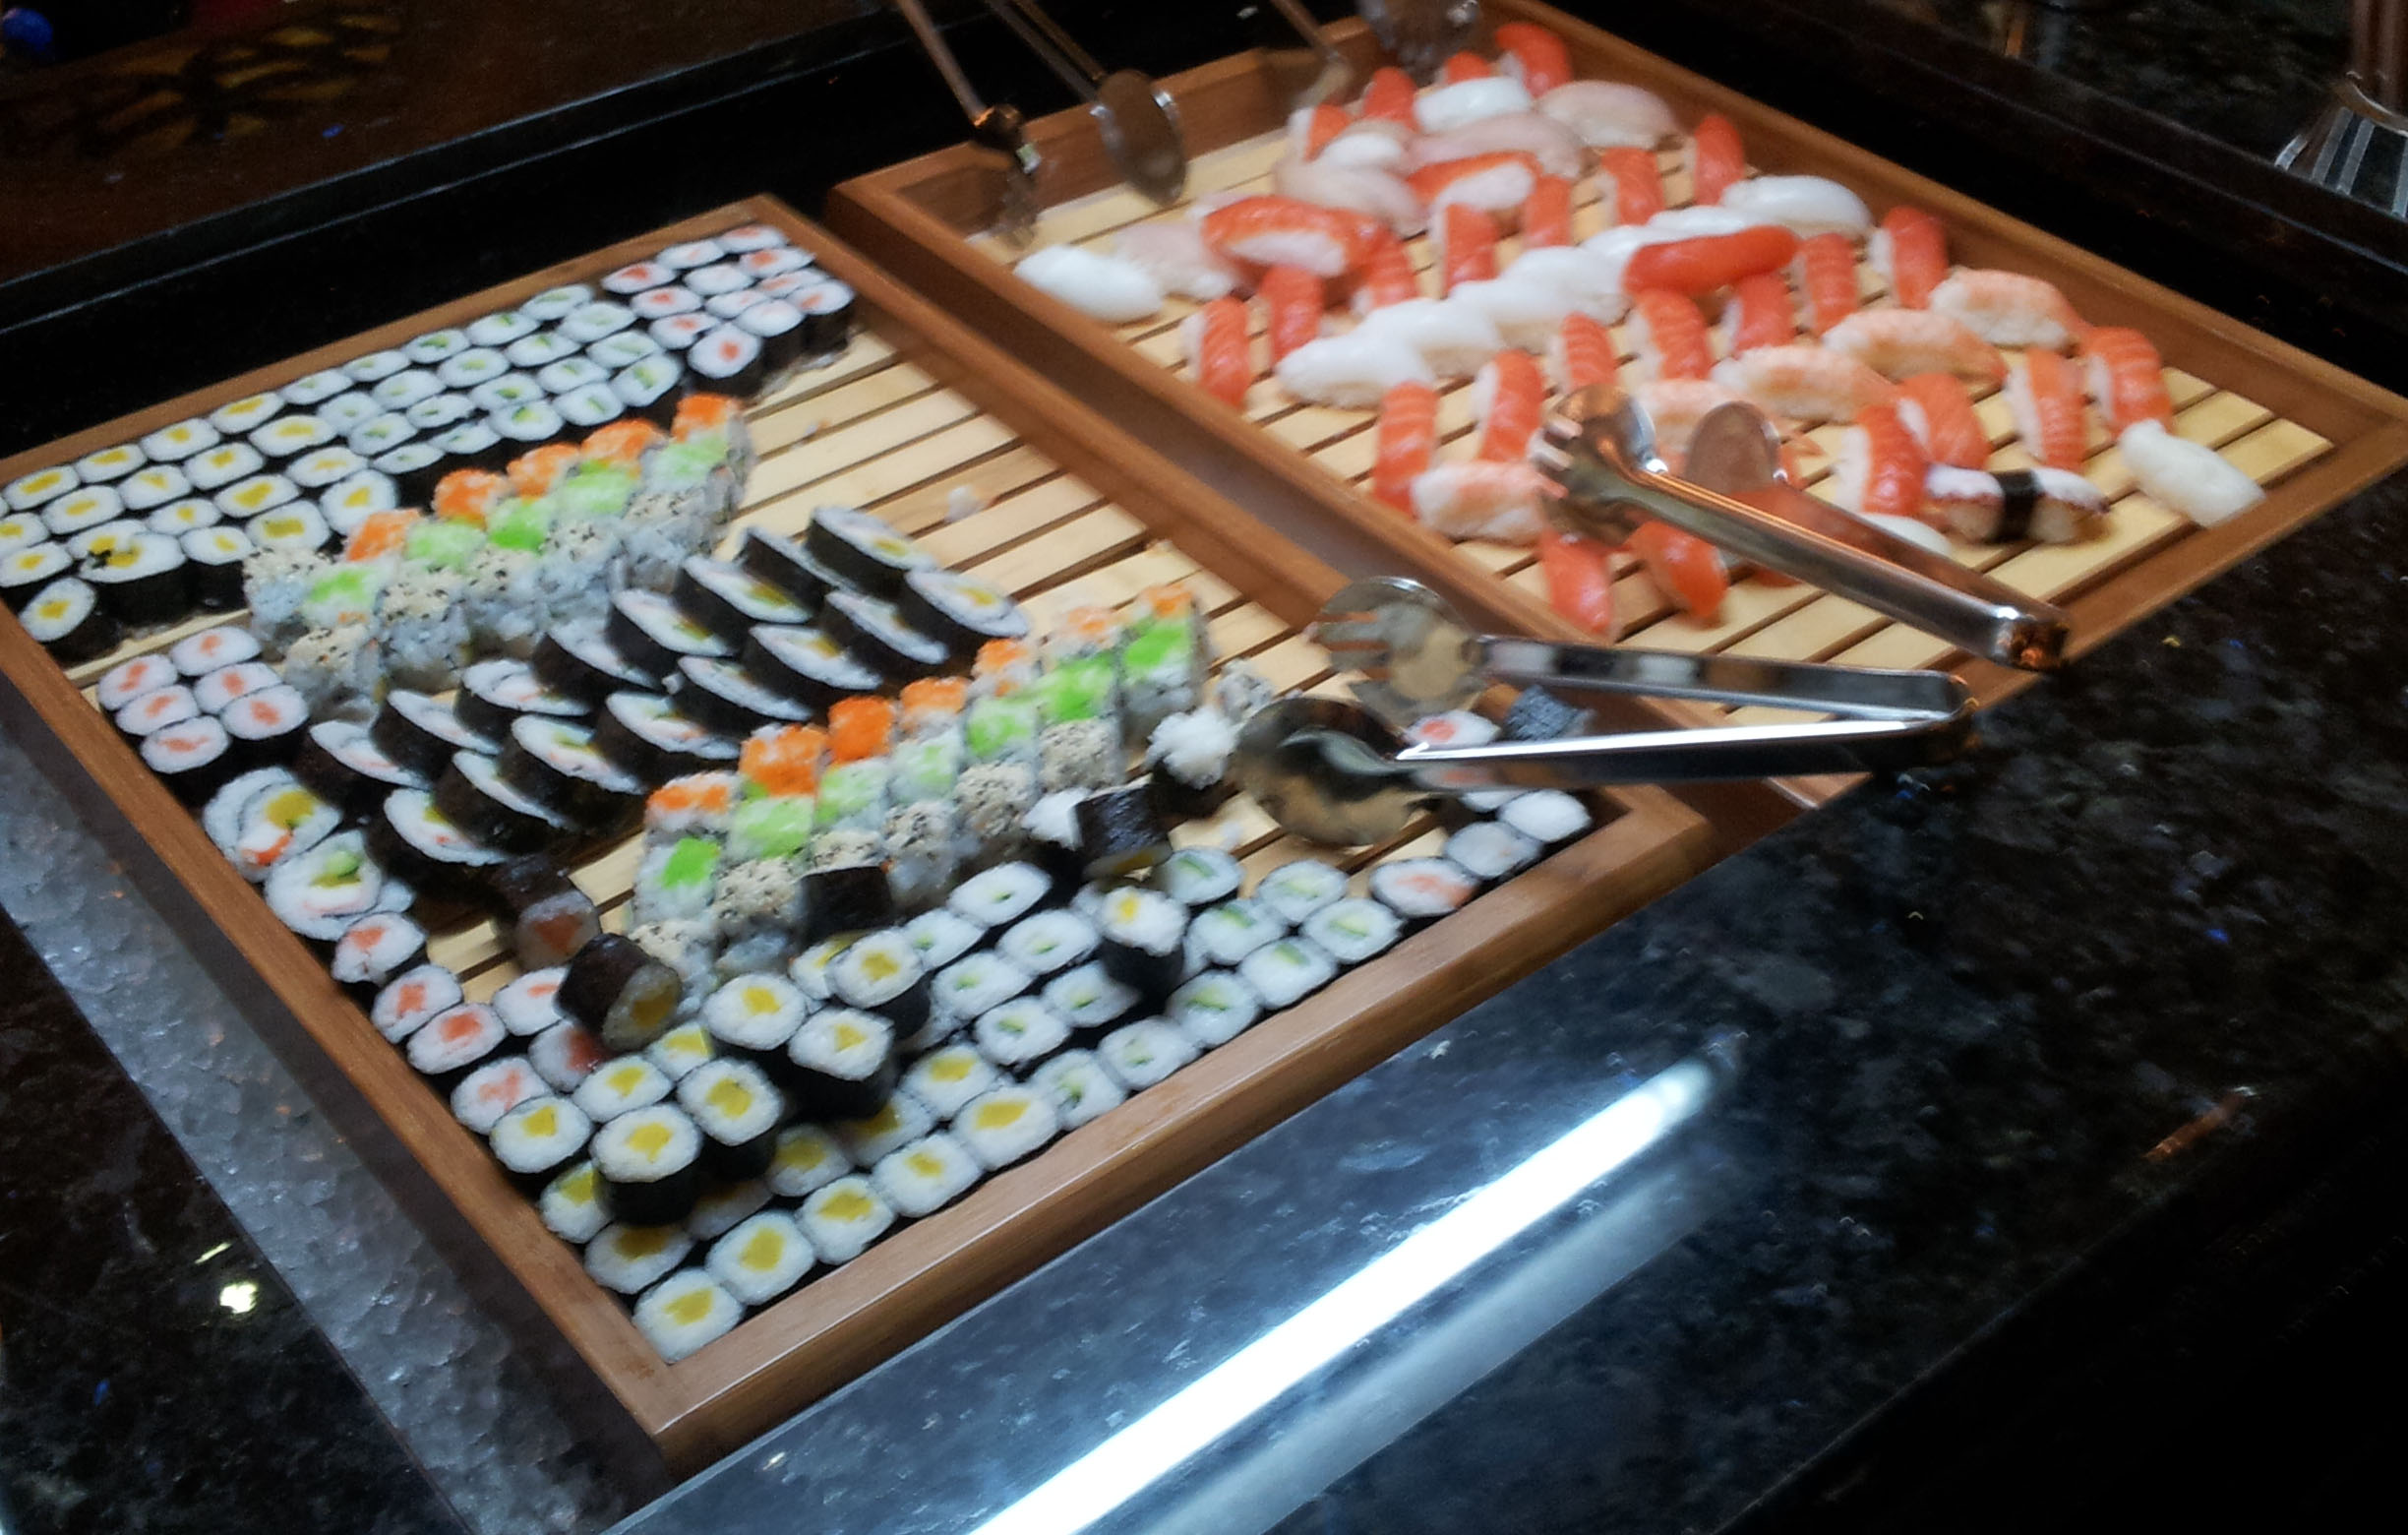 Auswahl an Sushis